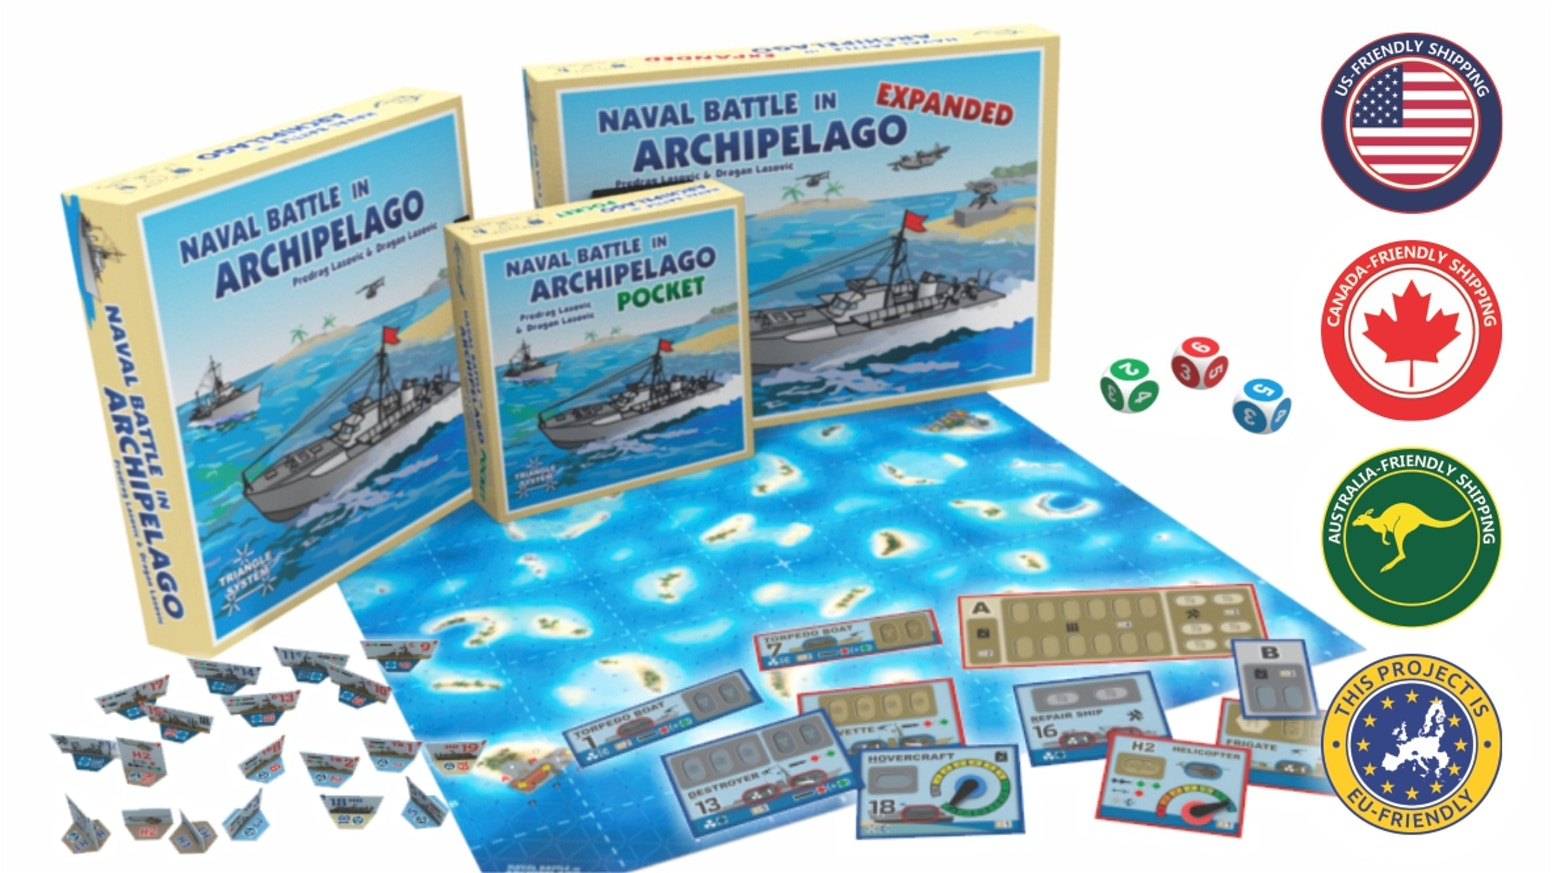 A realistic tactical simulation of naval combat in the 1970s, for two players.